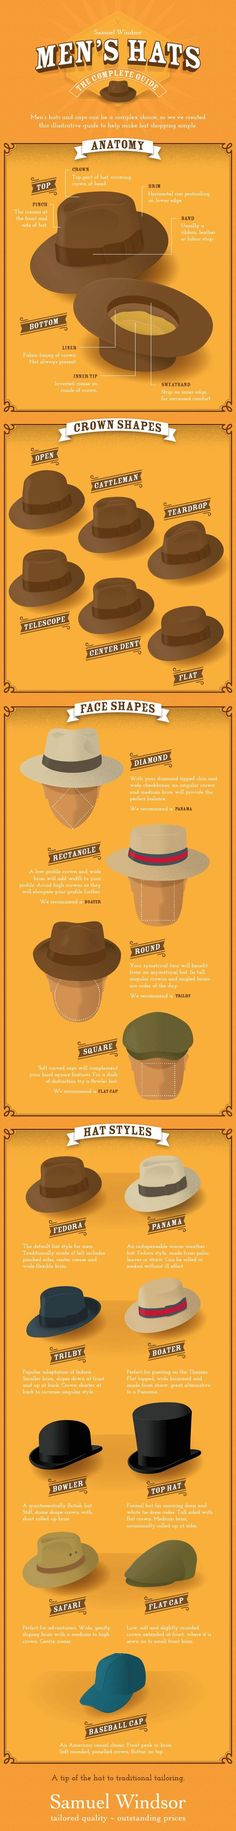 Men's Hats – The Complete Guide #Infographic #Fashion #Men: